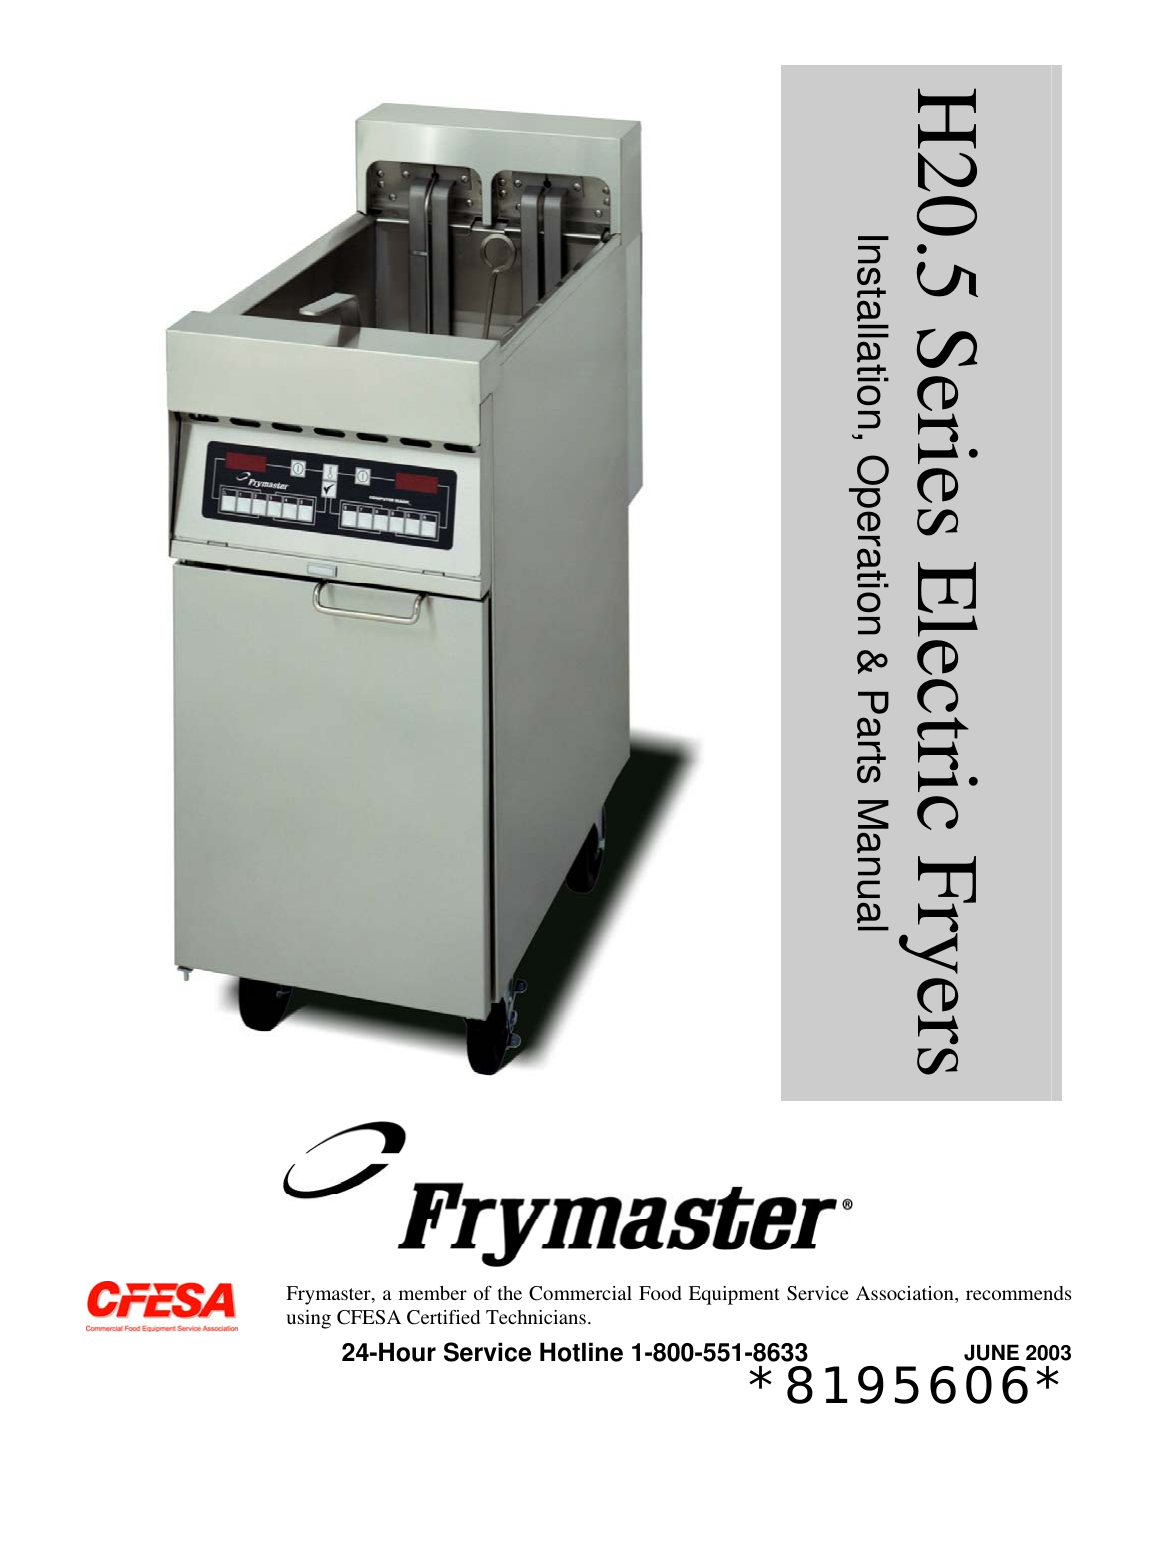 Frymaster H20 5 Series Users Manual 819 5606 Front Cover Dec 04 Wiring Diagram